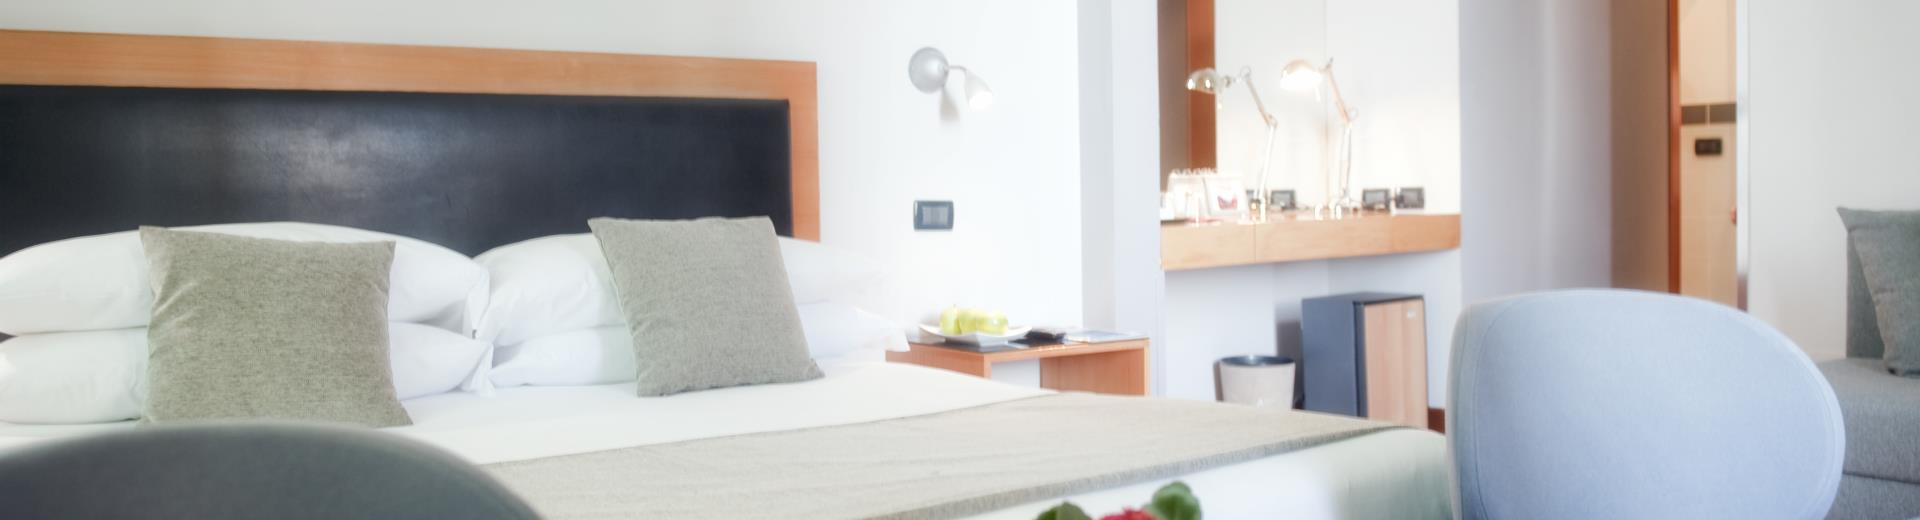 Superior Room - Best Western Ars Hotel Rome